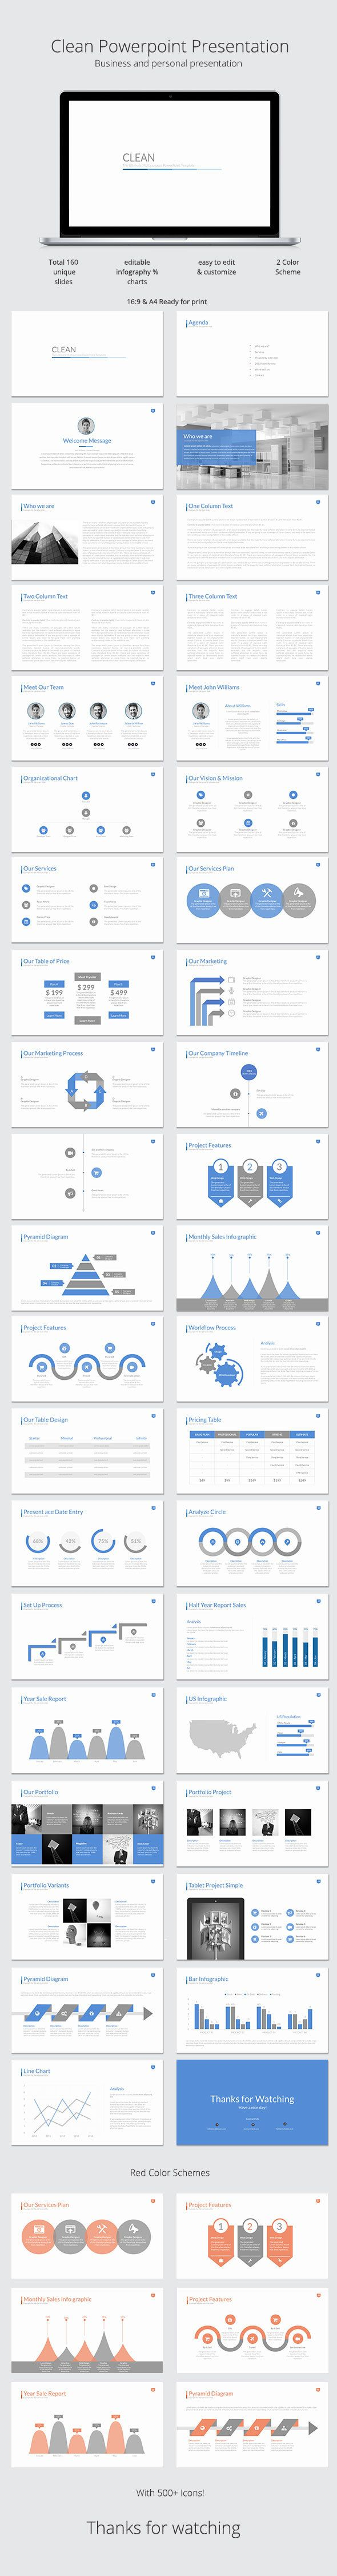 Coolmathgamesus  Pleasant  Ideas About Powerpoint Presentations On Pinterest With Handsome Clean Powerpoint Template With Amazing Th Grade Math Jeopardy Powerpoint Also End Of Powerpoint In Addition Check Symbol In Powerpoint And Inserting A Video Into Powerpoint  As Well As Powerpoint Download  Additionally Powerpoint For Interview From Pinterestcom With Coolmathgamesus  Handsome  Ideas About Powerpoint Presentations On Pinterest With Amazing Clean Powerpoint Template And Pleasant Th Grade Math Jeopardy Powerpoint Also End Of Powerpoint In Addition Check Symbol In Powerpoint From Pinterestcom